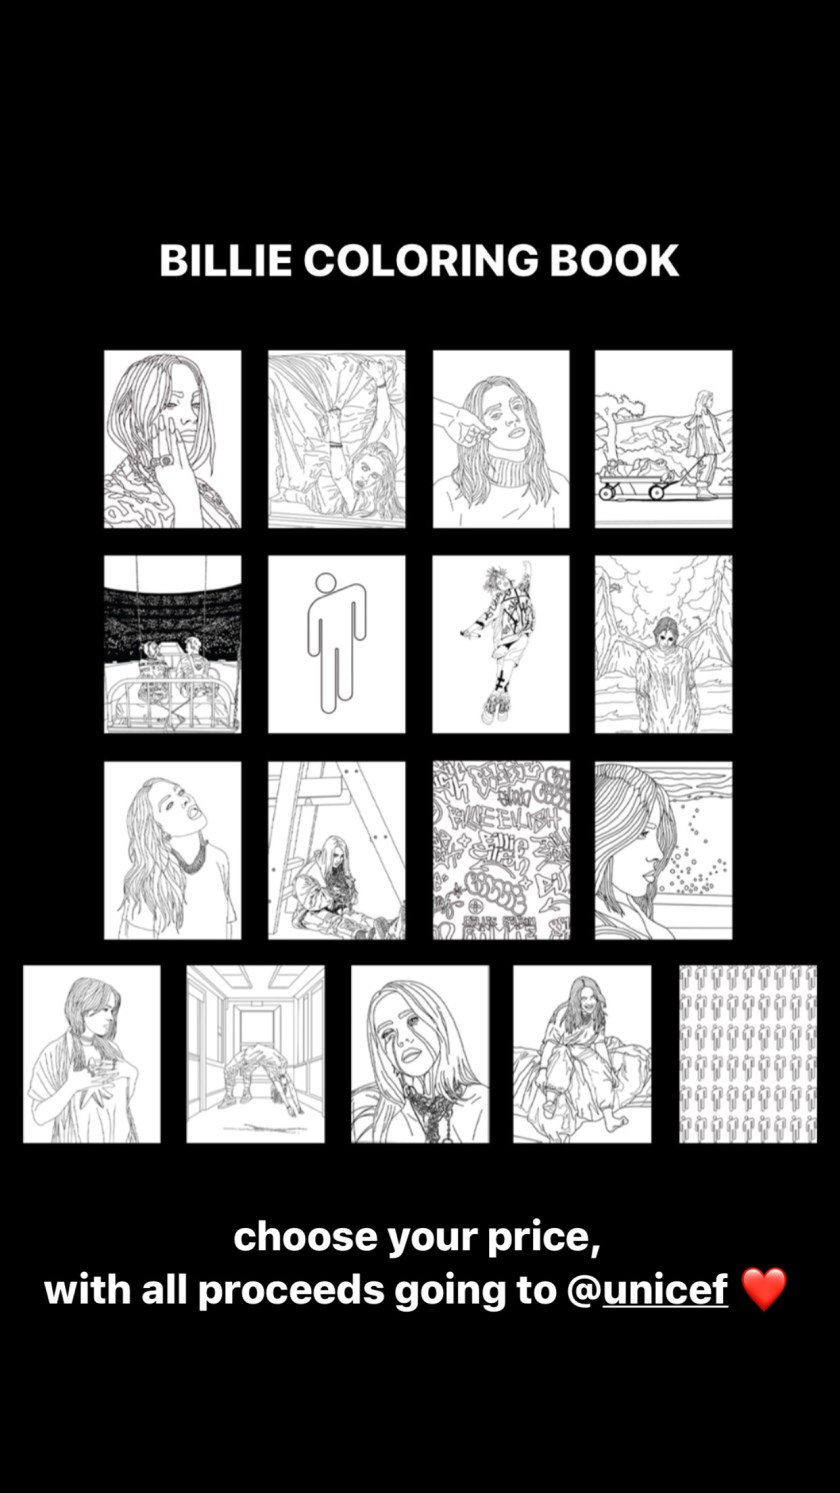 billie eilish releases 'pick your donation' coloring book